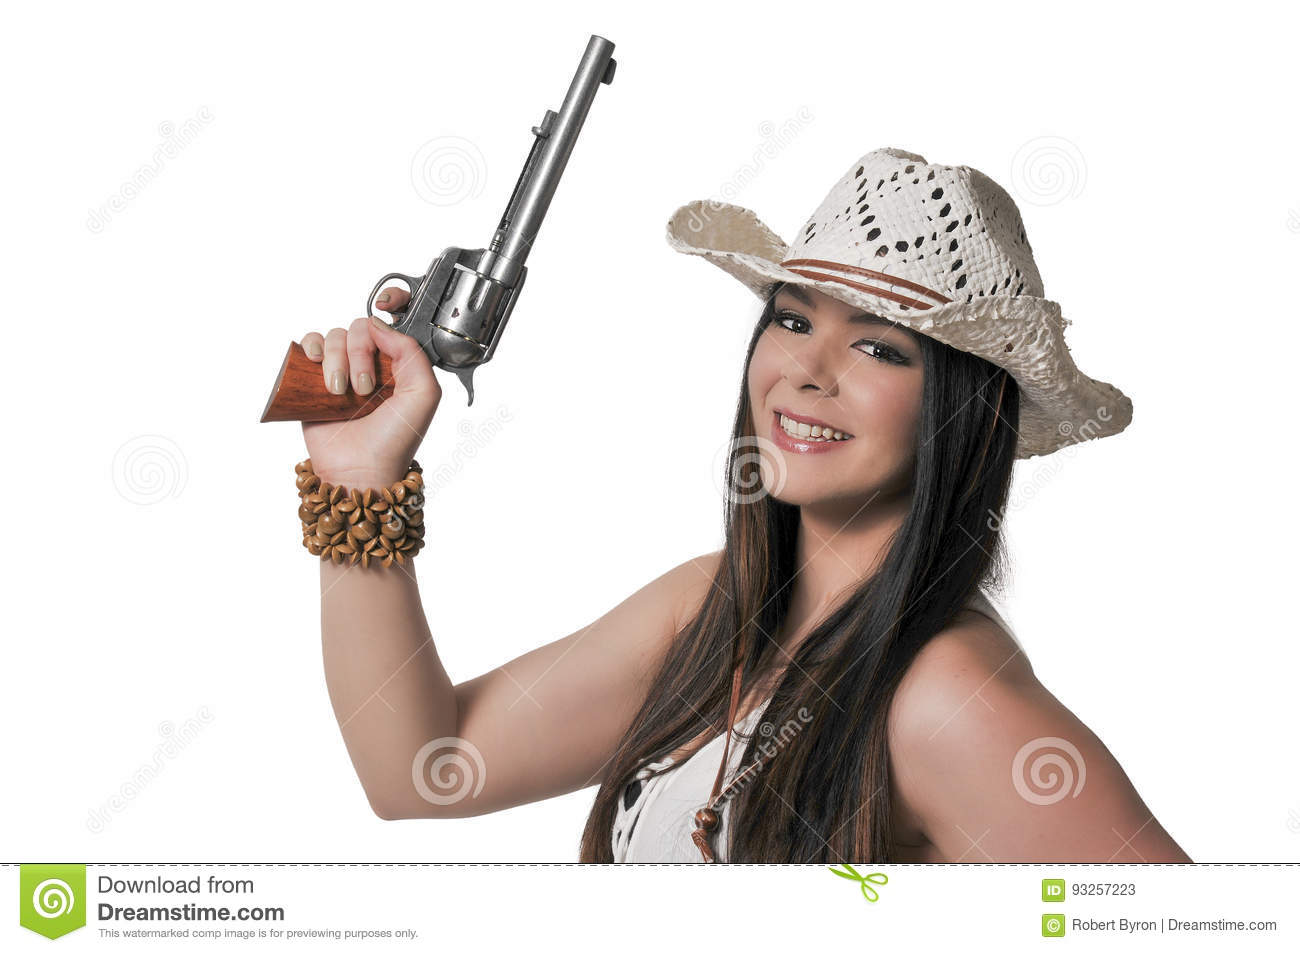 c8f663499a2 Cowgirl with relvolver stock image. Image of country - 93257223